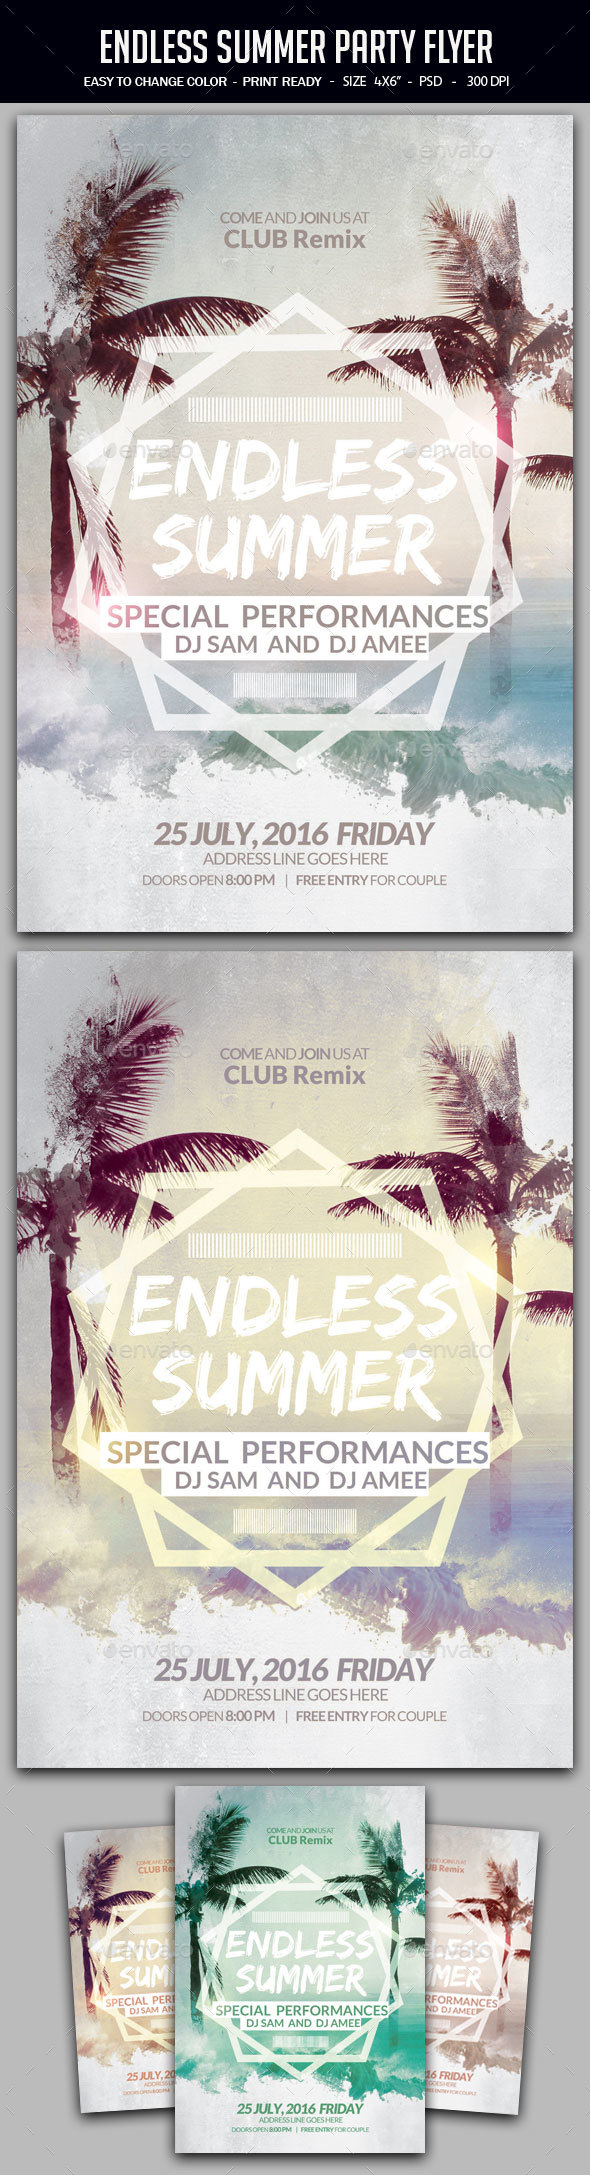 Endless Summer Party Flyer